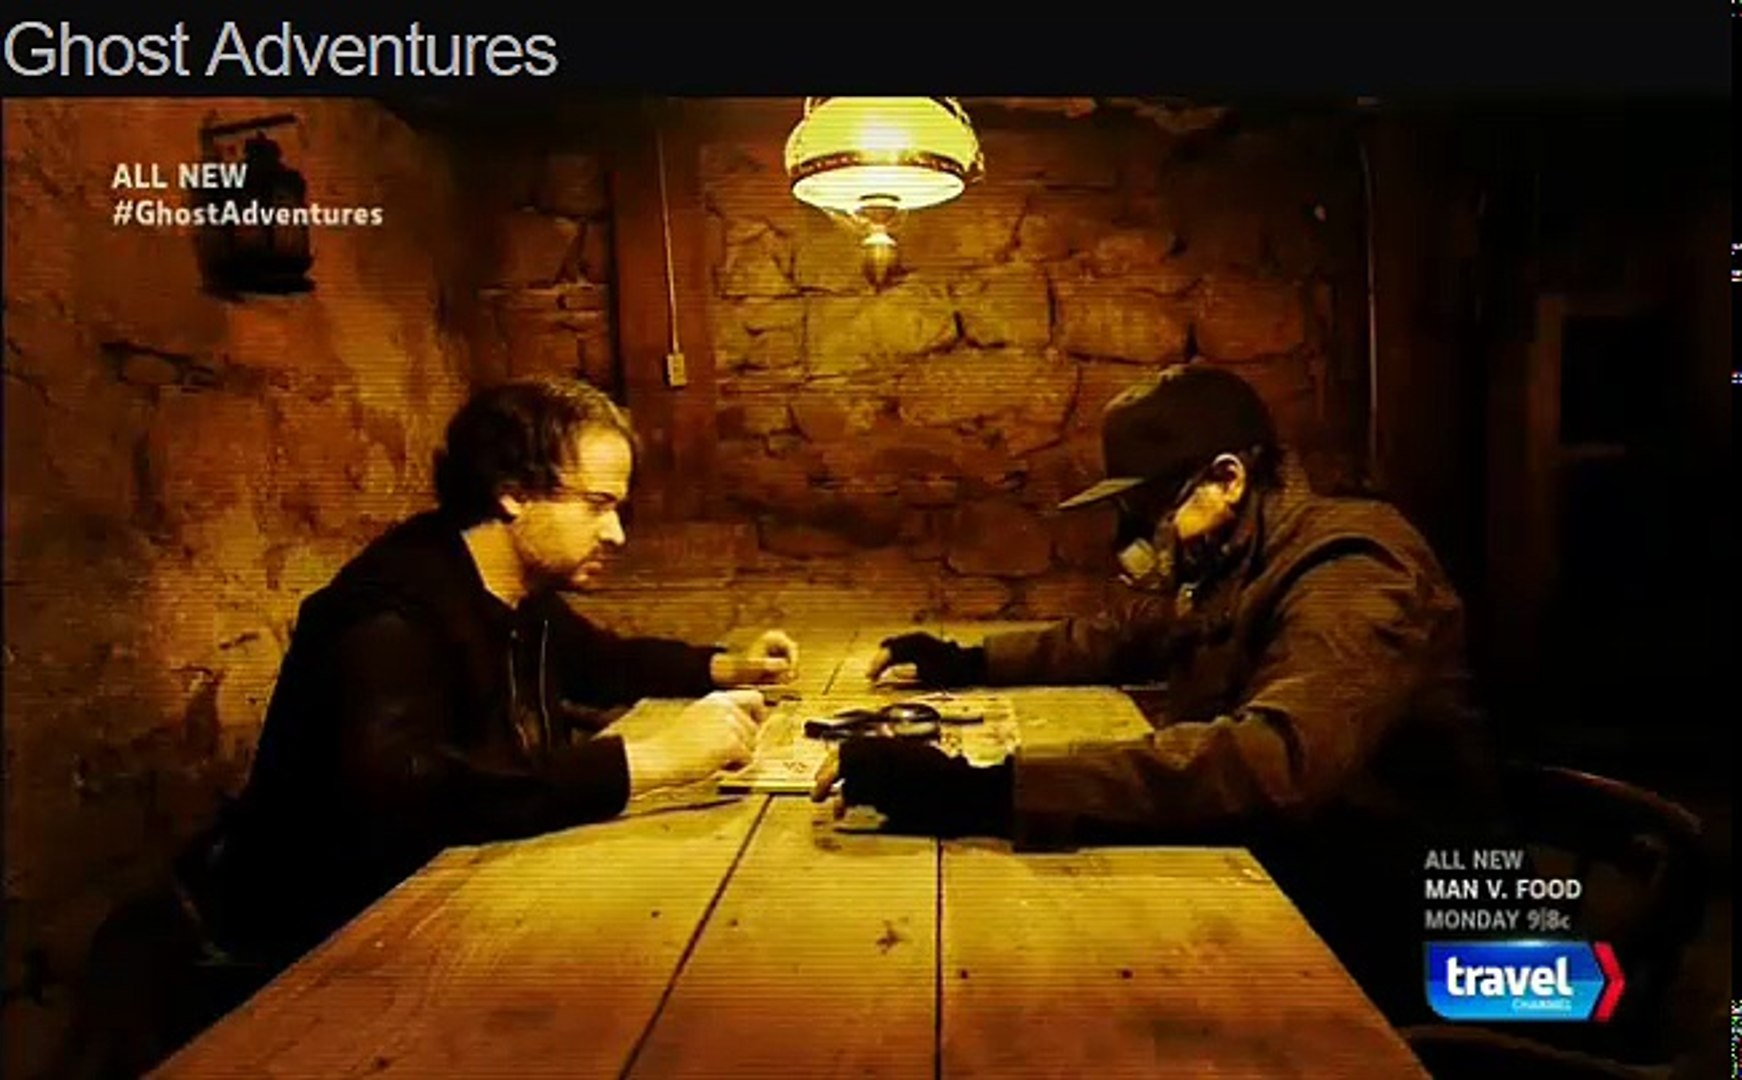 Ghost Adventures 2020 Halloween Special Dailymotion Ghost Adventures S16E5 June 16 2018   Ghost Adventures 16x5